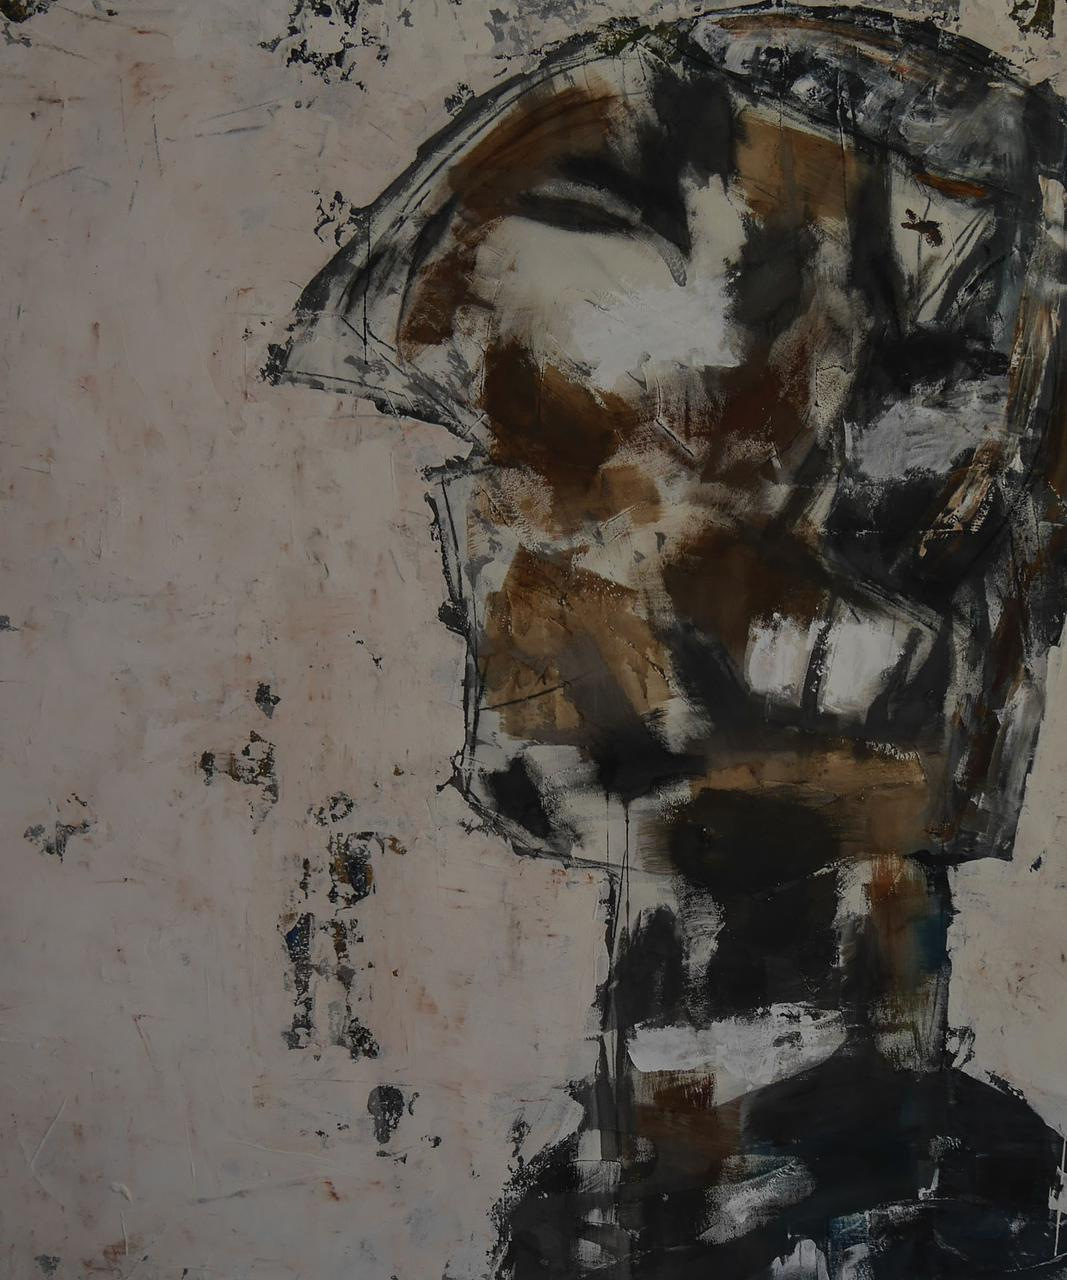 Miltos Psarros, 150 x 130 cm, acrylics and mixed media on canvas